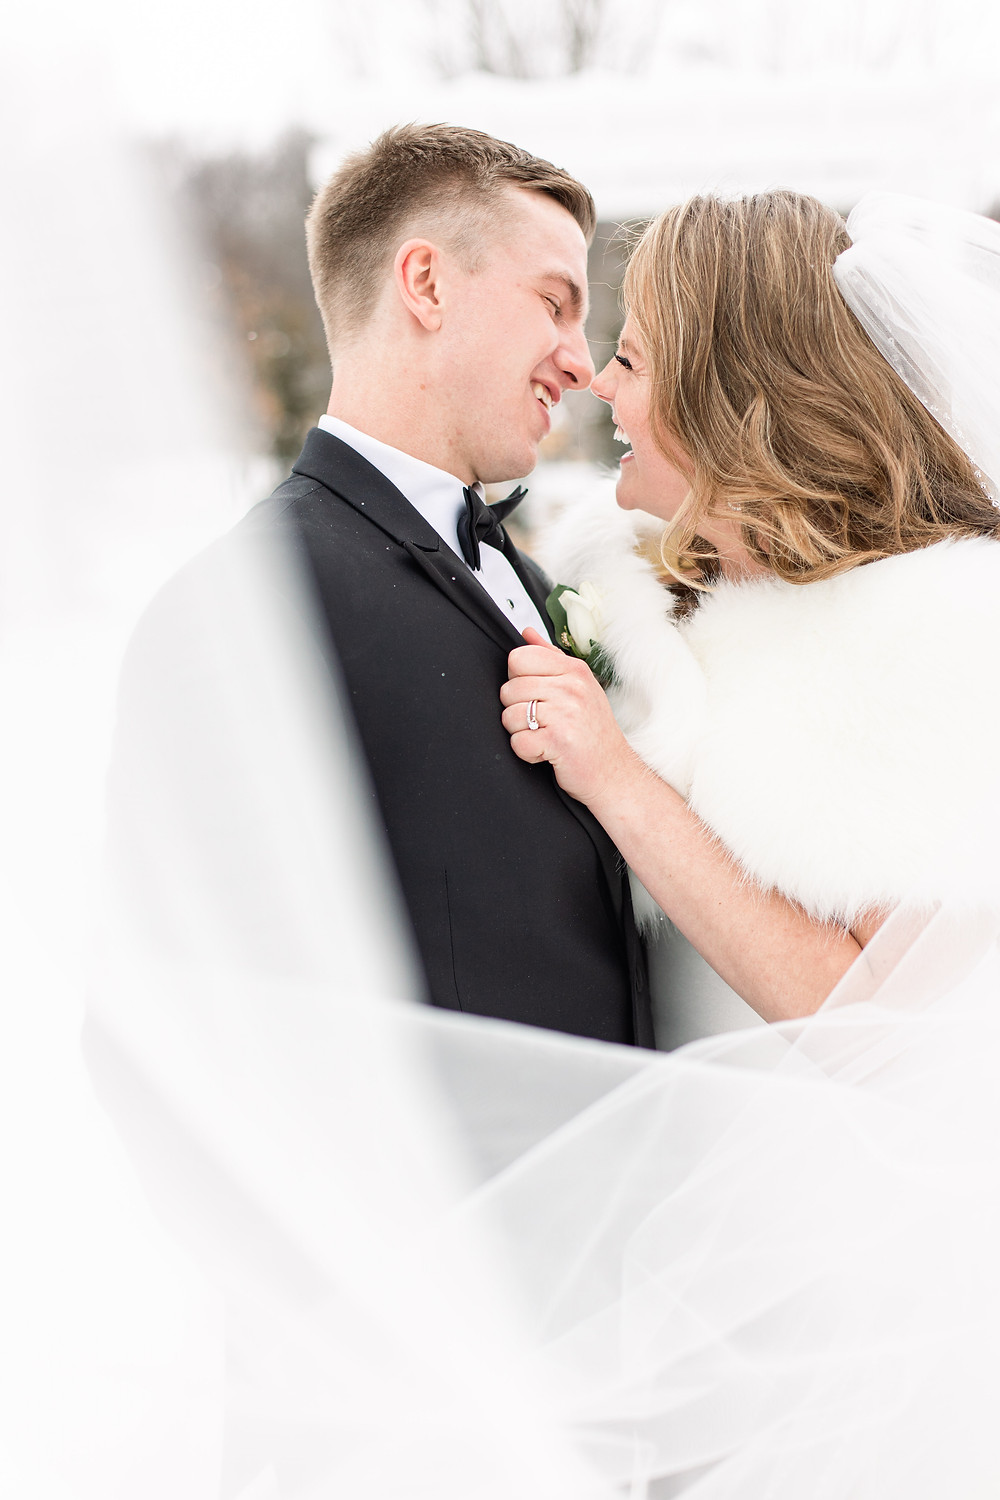 Josh and Andrea wedding photography husband and wife photographer team michigan venue Bay Pointe Woods shelbyville snow winter wedding bride and groom kissing laughing